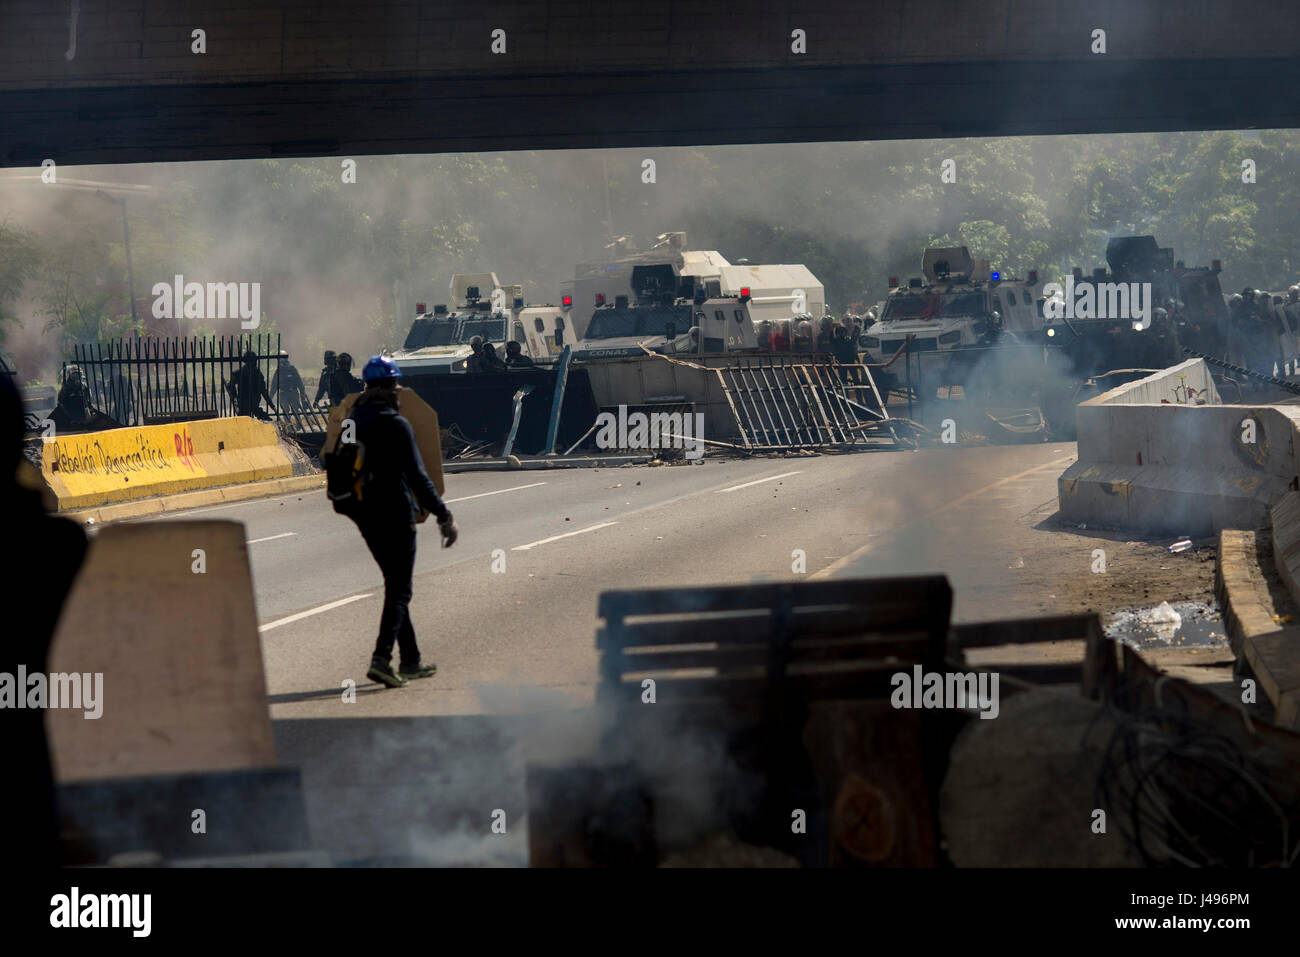 Caracas, Venezuela. 10th May, 2017. Barricades set up by protestors during anti-government protests in Caracas, - Stock Image